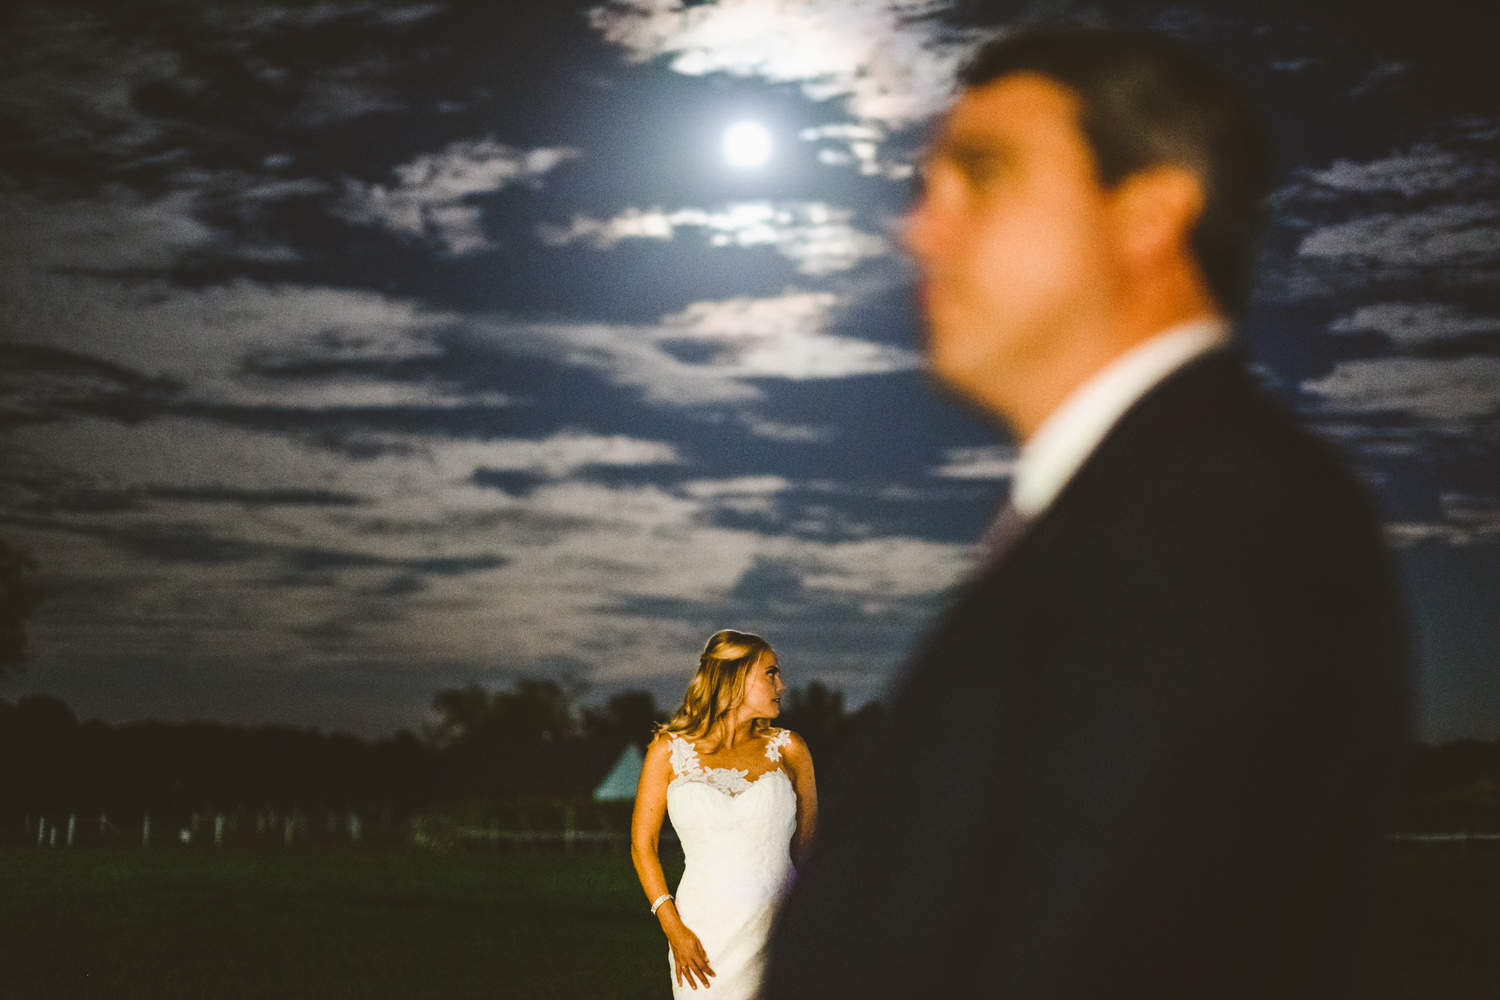 020 - wedding portrait under a harvest moon in richmond virginia.jpg